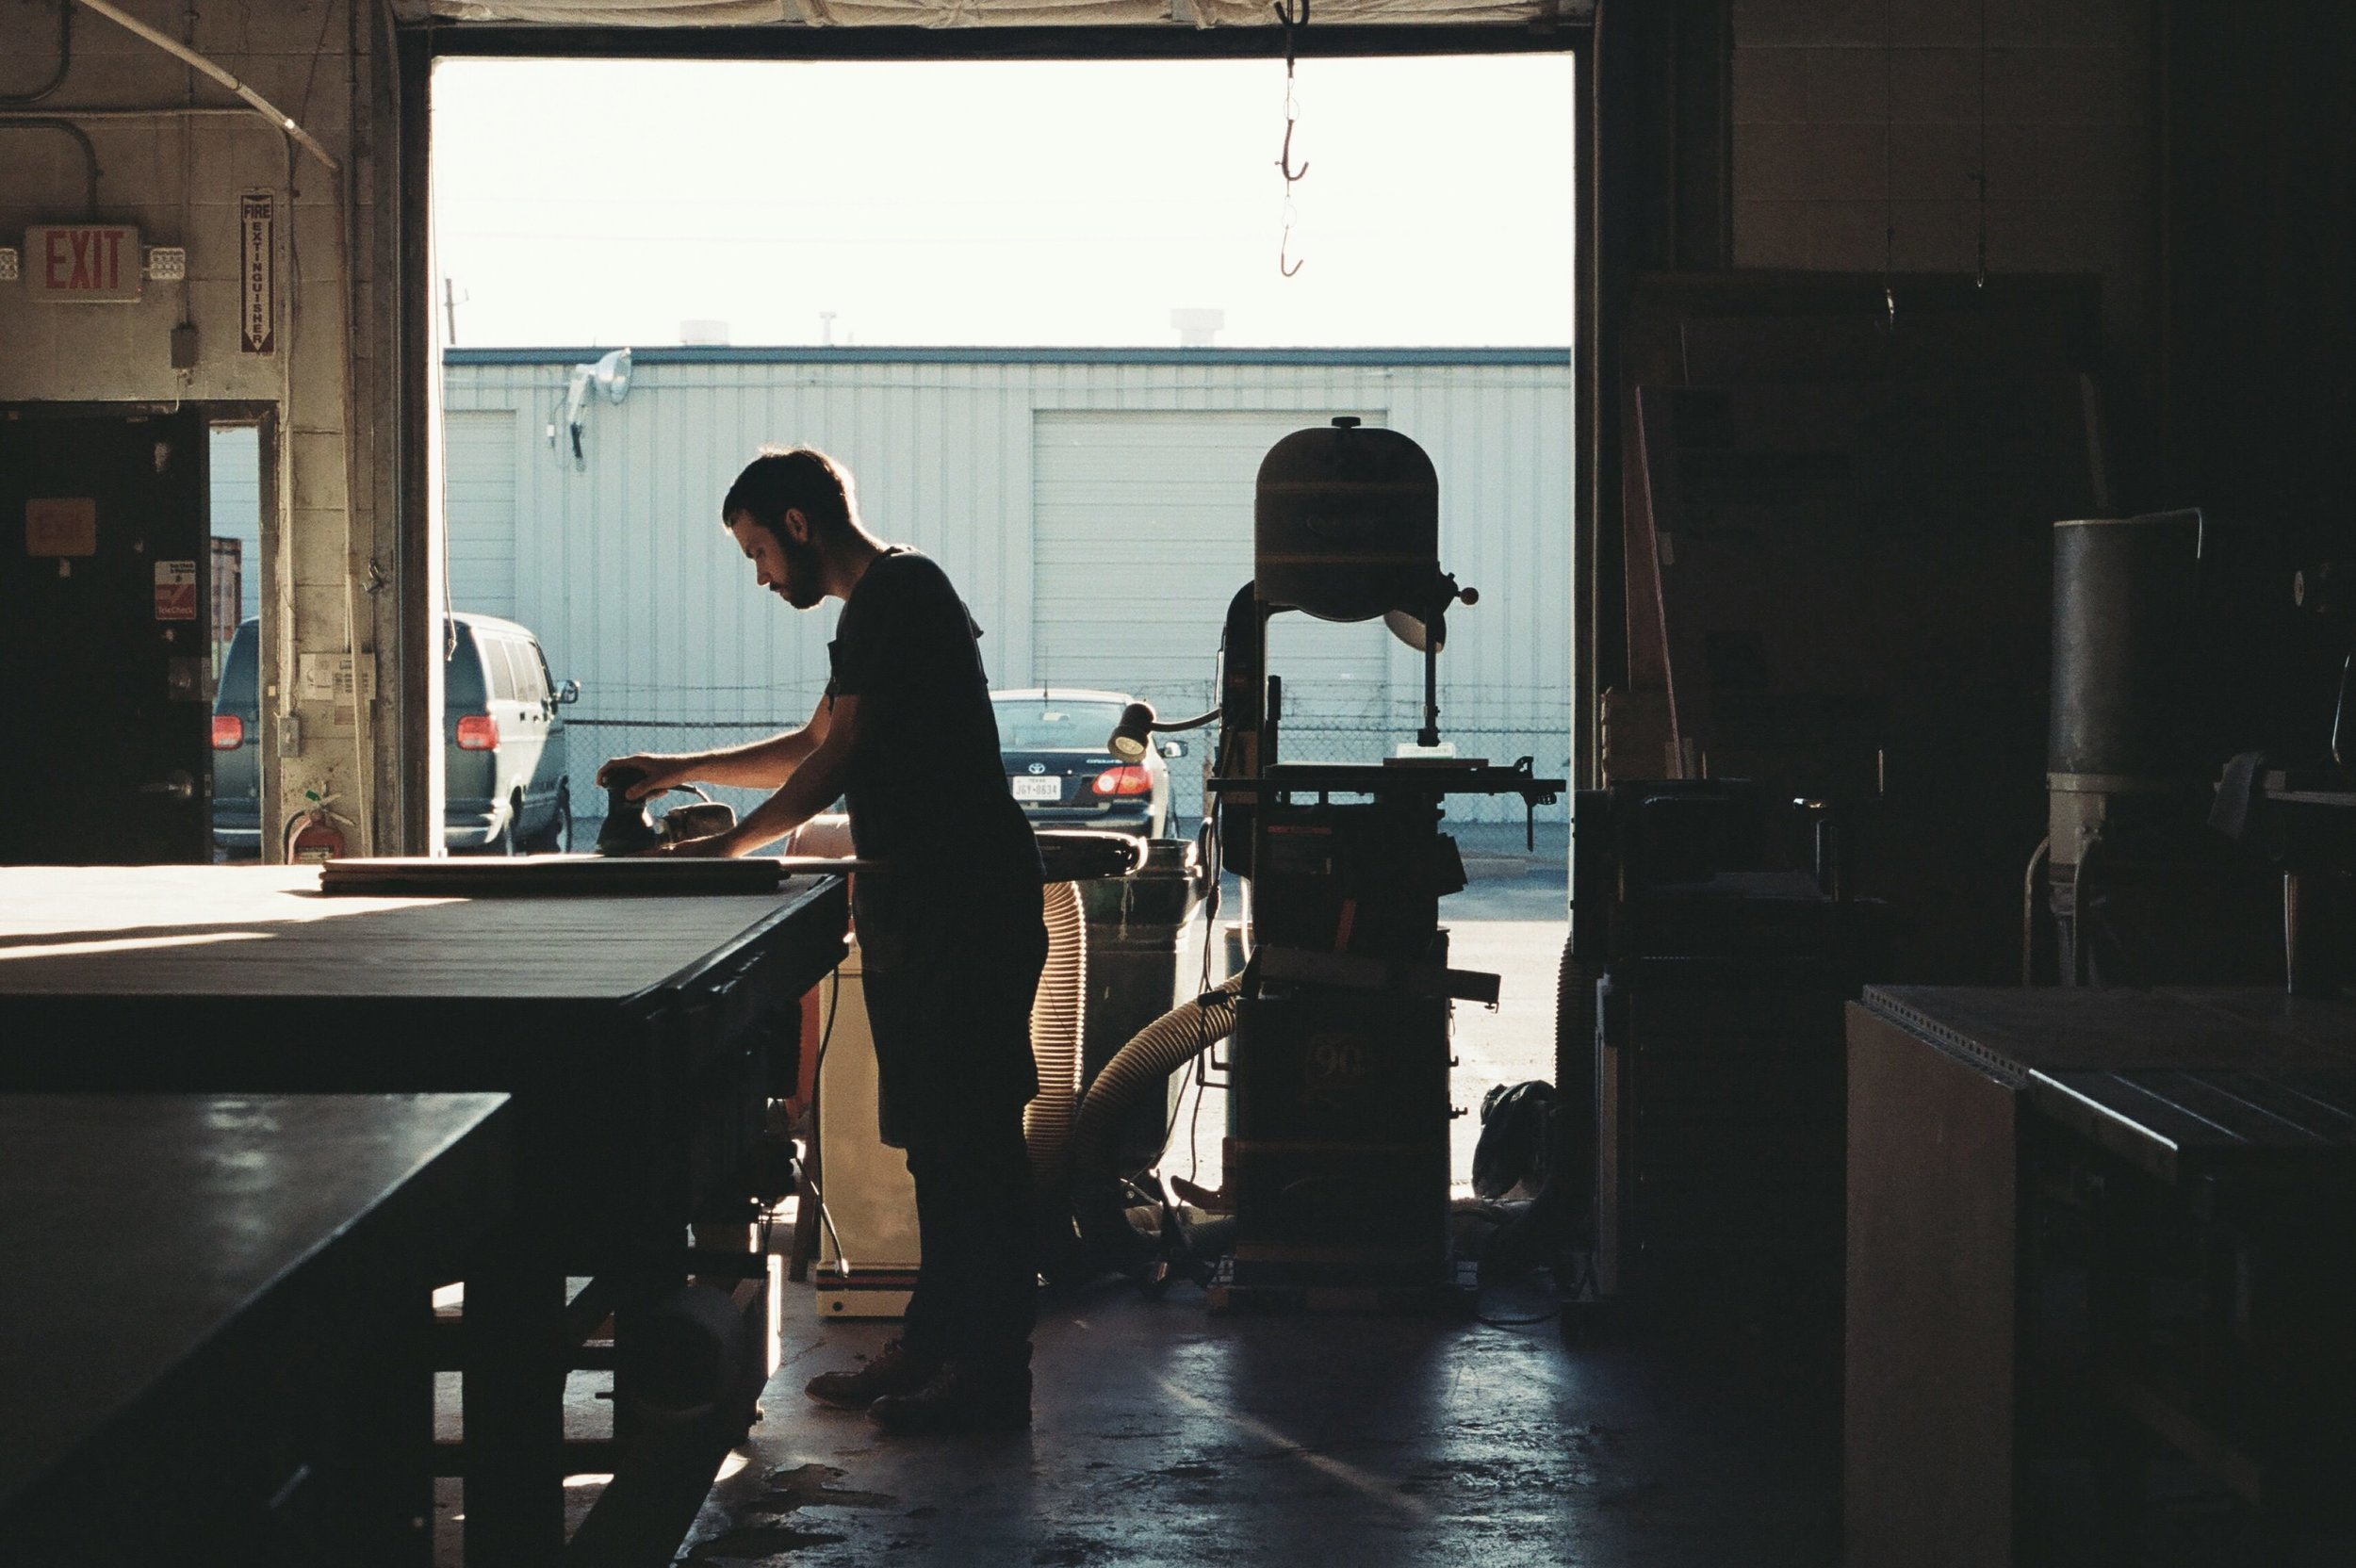 Creative-Spaces-Side-Project-Skateboards-Portra-160-010.JPG